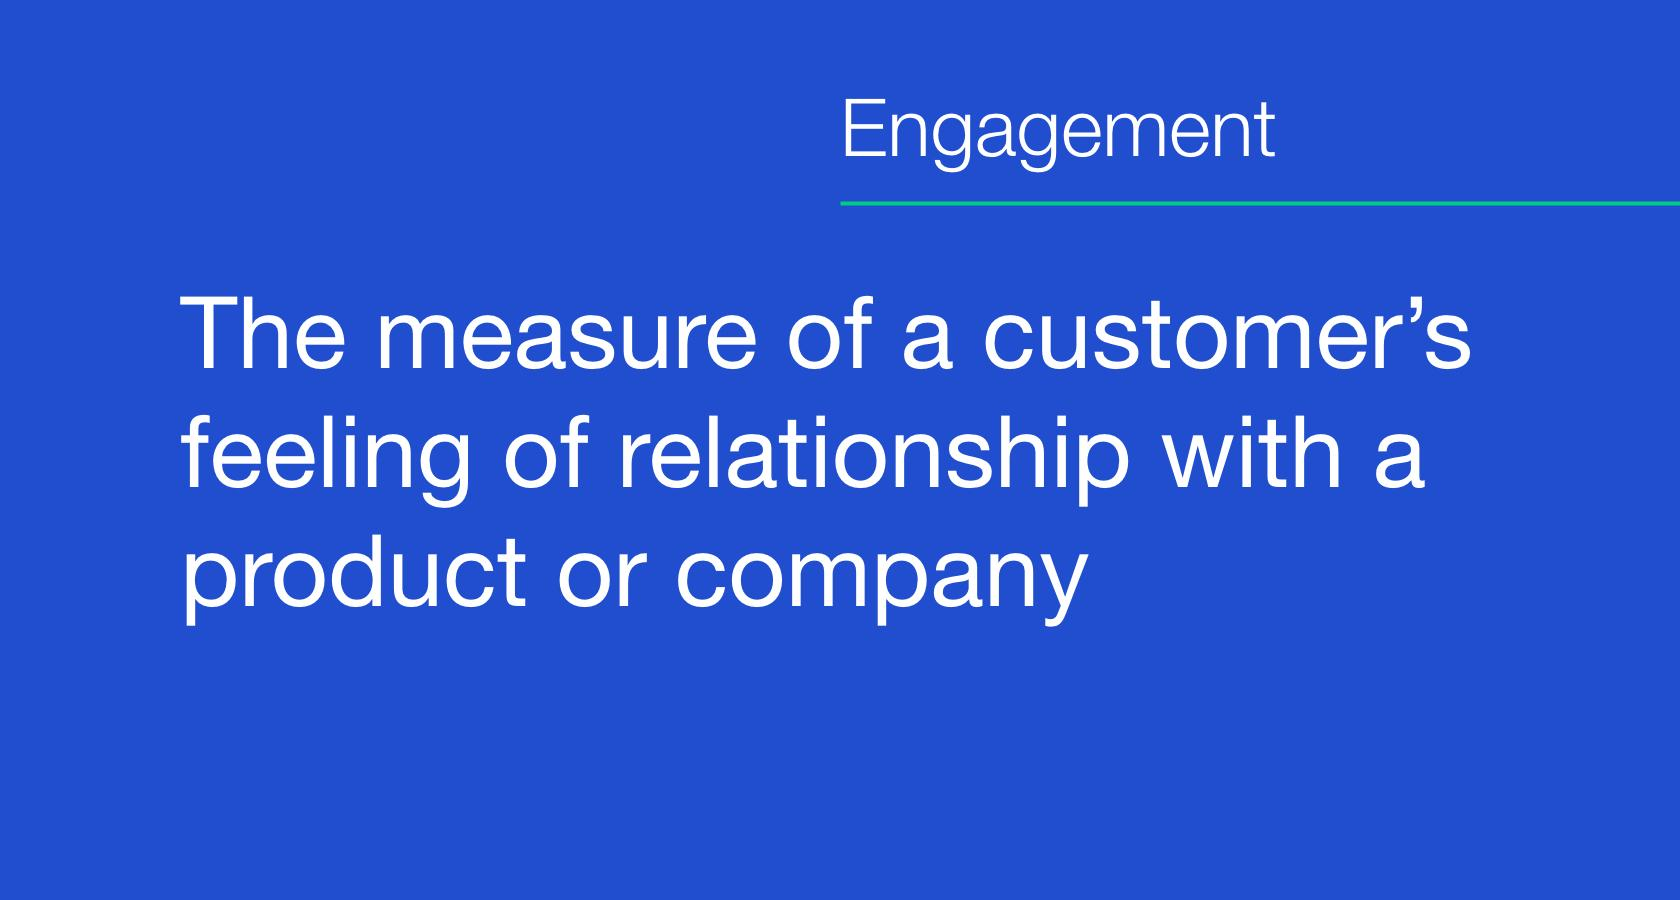 Customer-centric culture